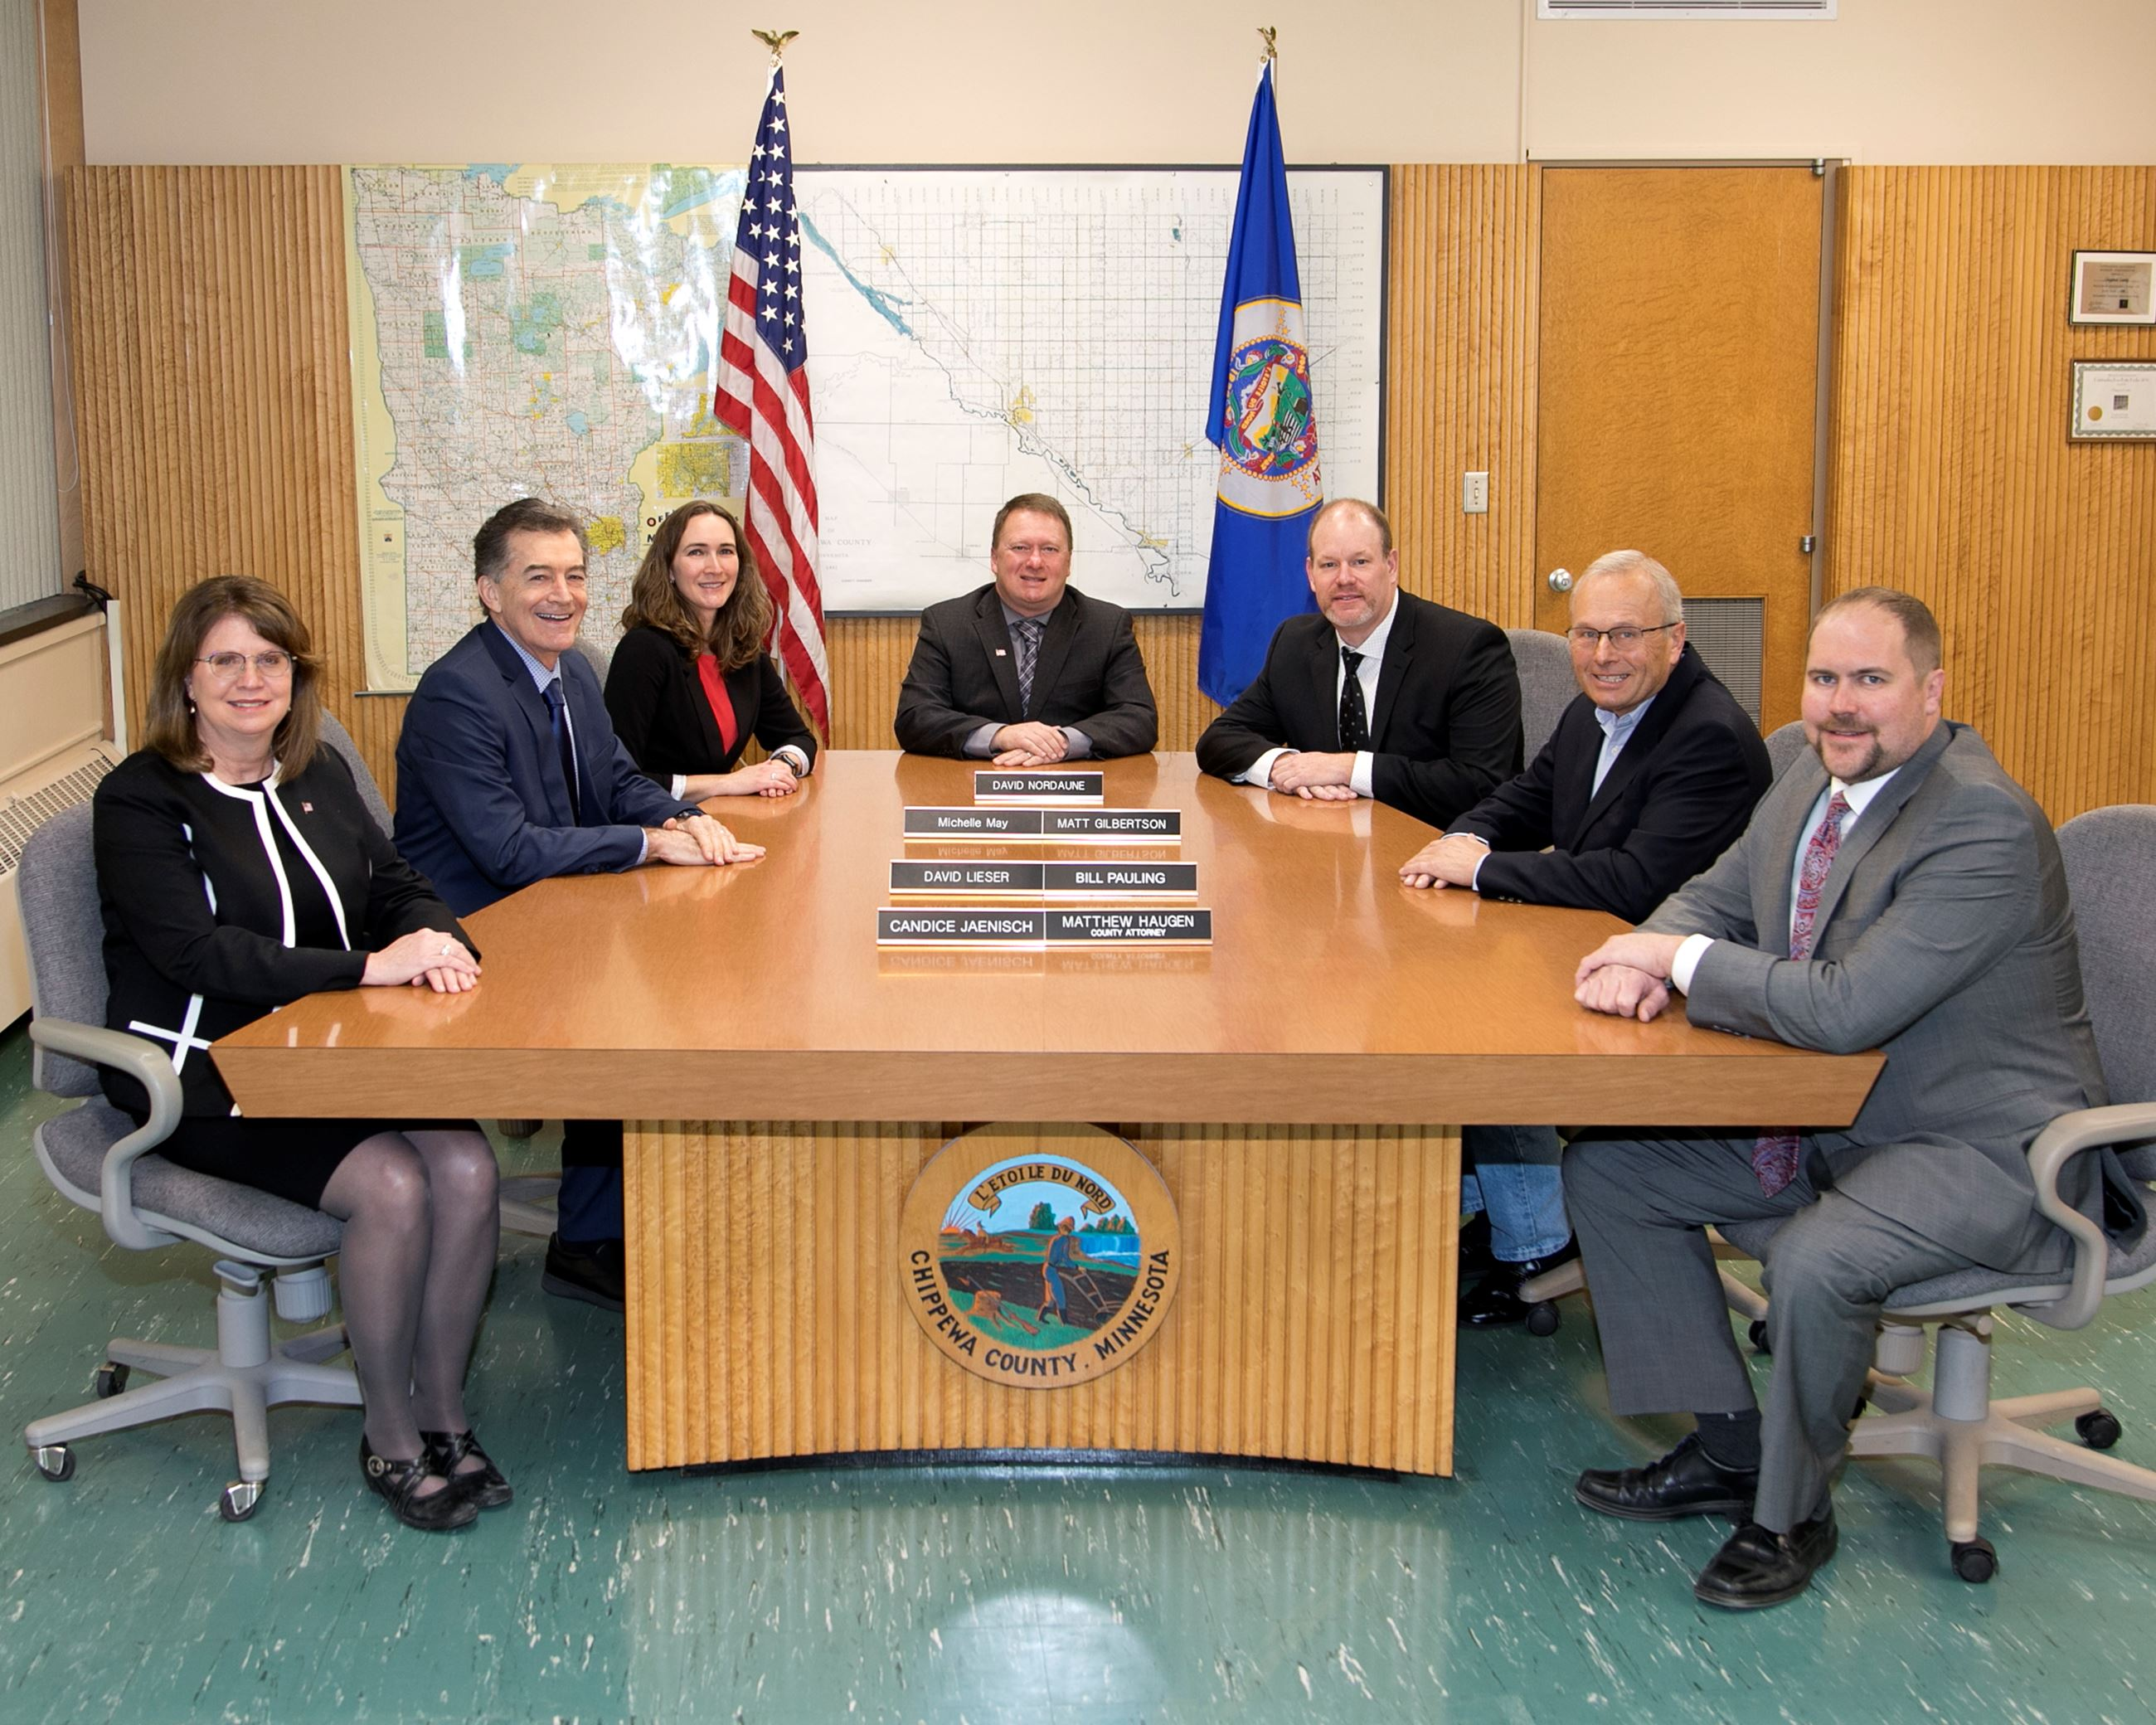 Chippewa County Board of Commissioners